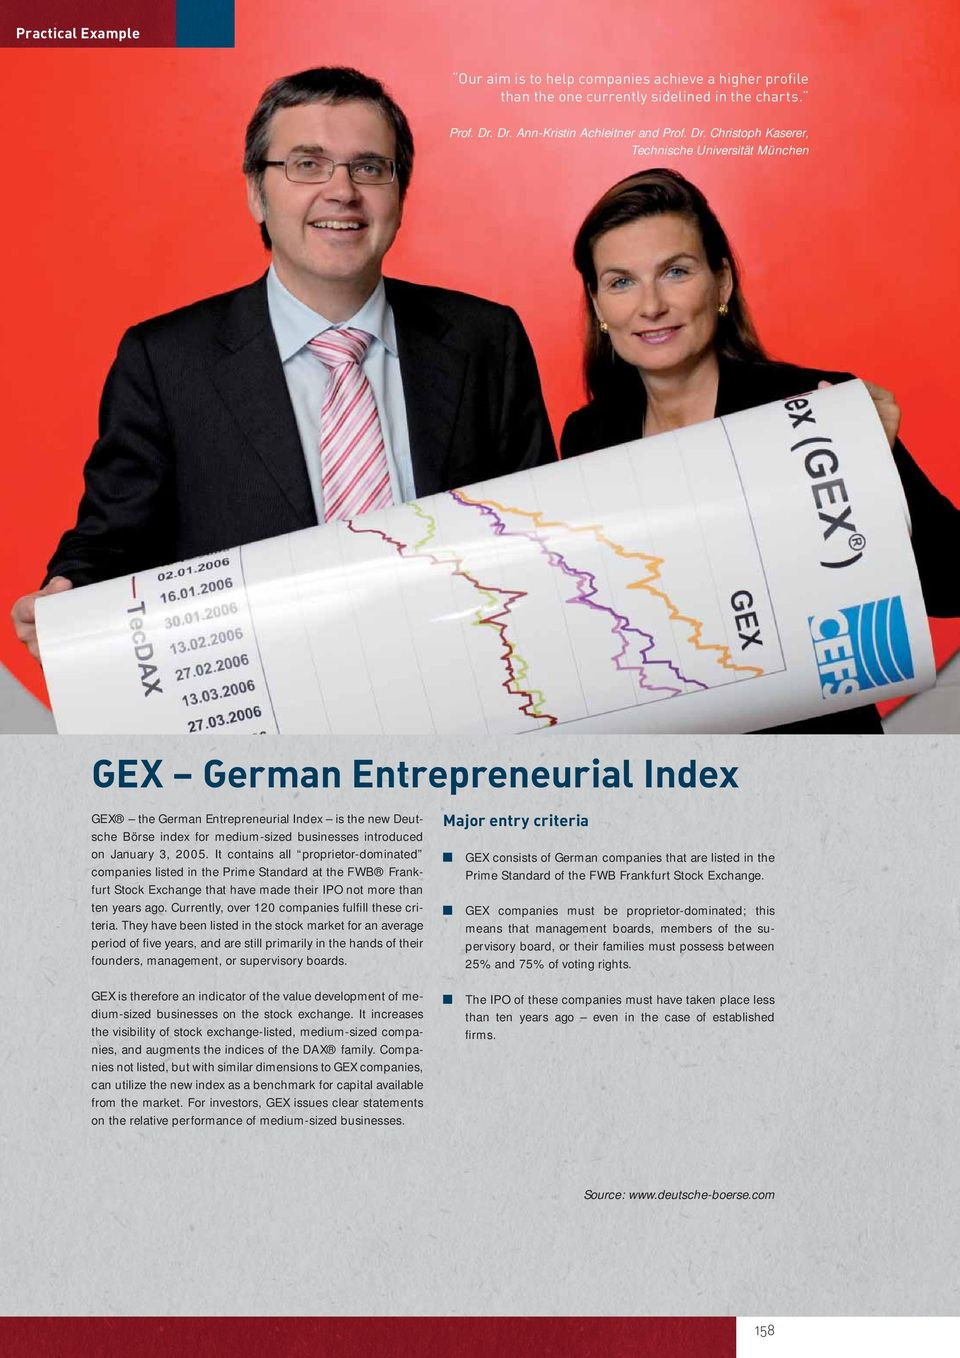 Christoph Kaserer, Technische Universität München GEX German Entrepreneurial Index GEX the German Entrepreneurial Index is the new Deutsche Börse index for medium-sized businesses introduced on